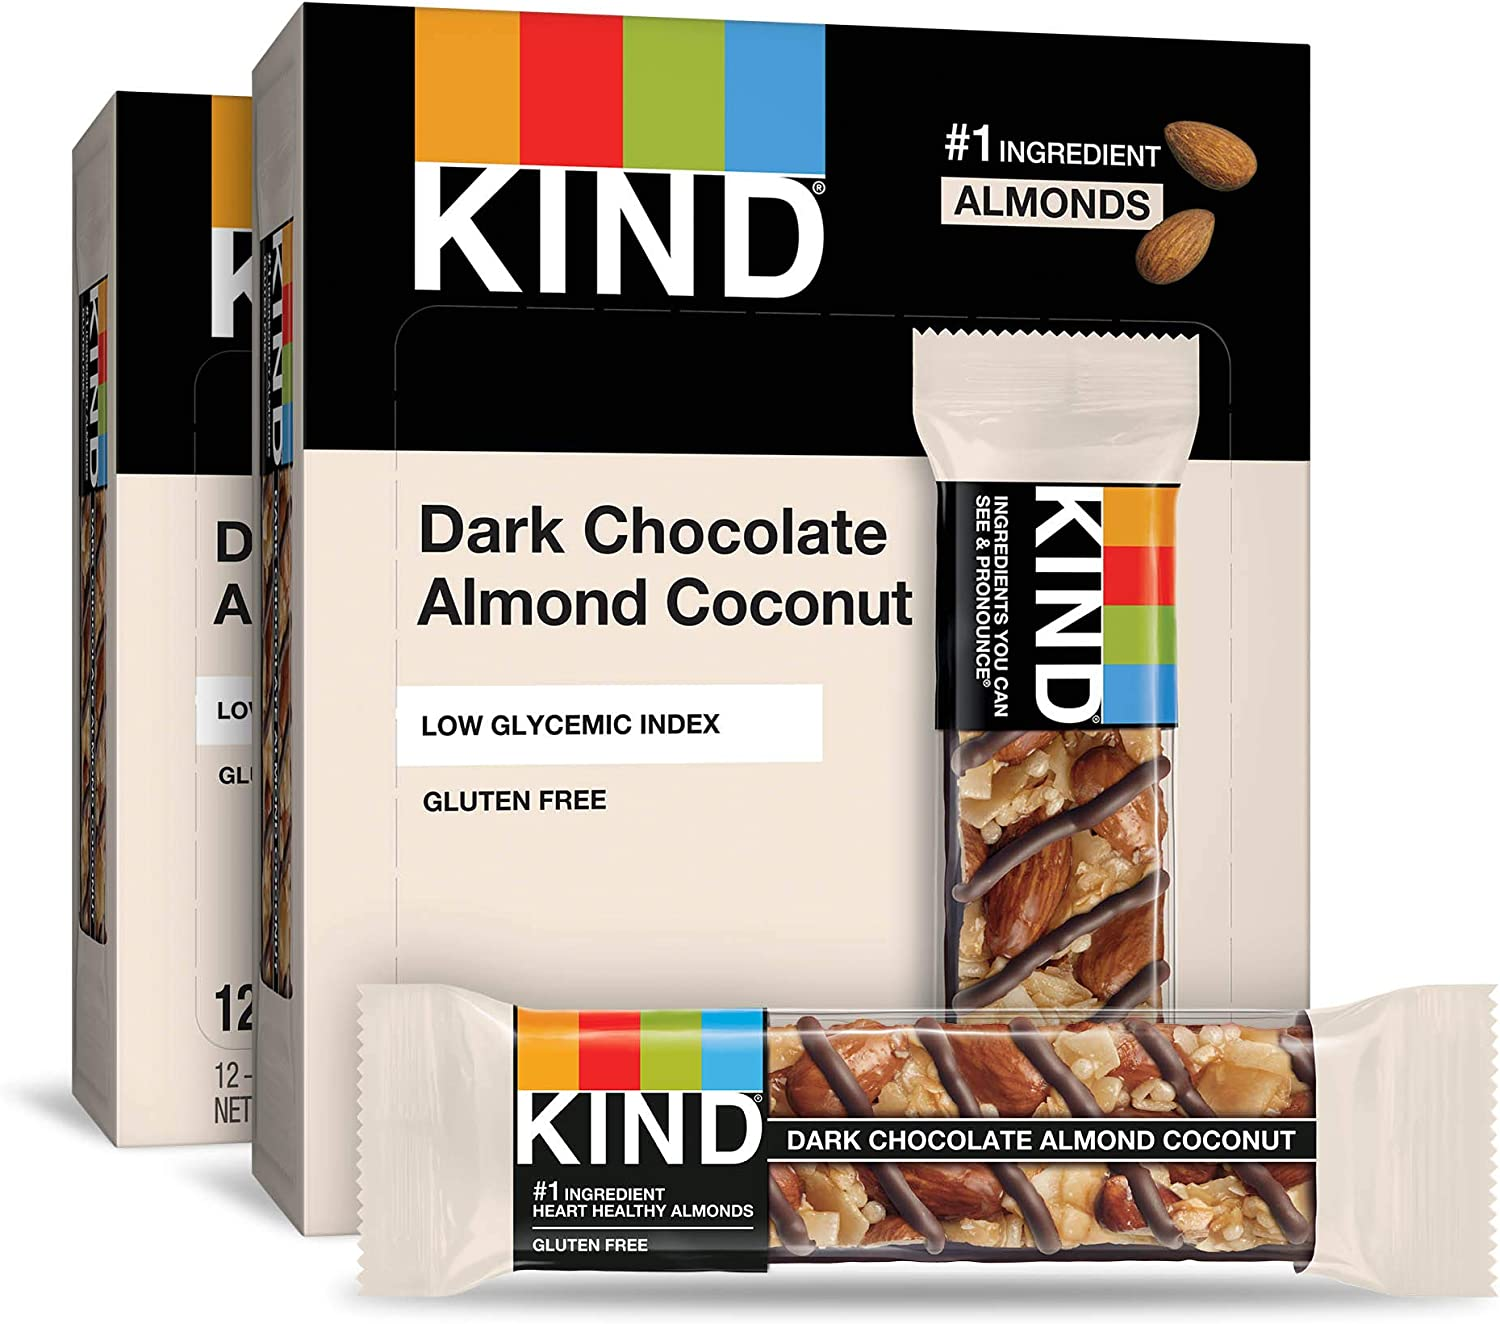 KIND Dark Chocolate Almond Coconut Bars, Low Glycemic Index, Gluten Free Bars, 1.4 OZ, 24 Count